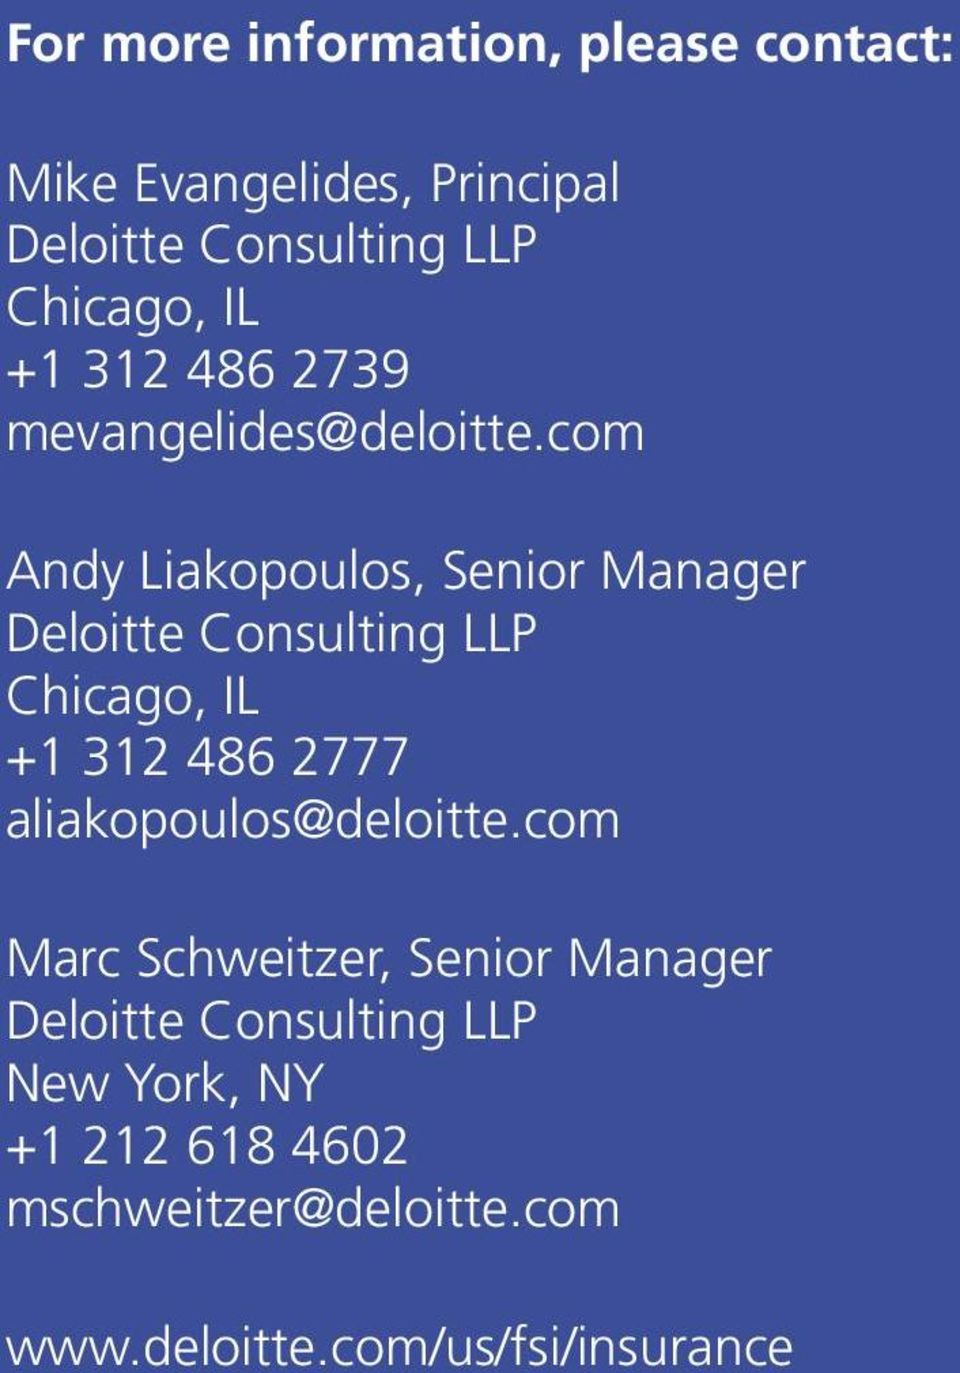 com Andy Liakopoulos, Senior Manager Deloitte Consulting LLP Chicago, IL +1 312 486 2777